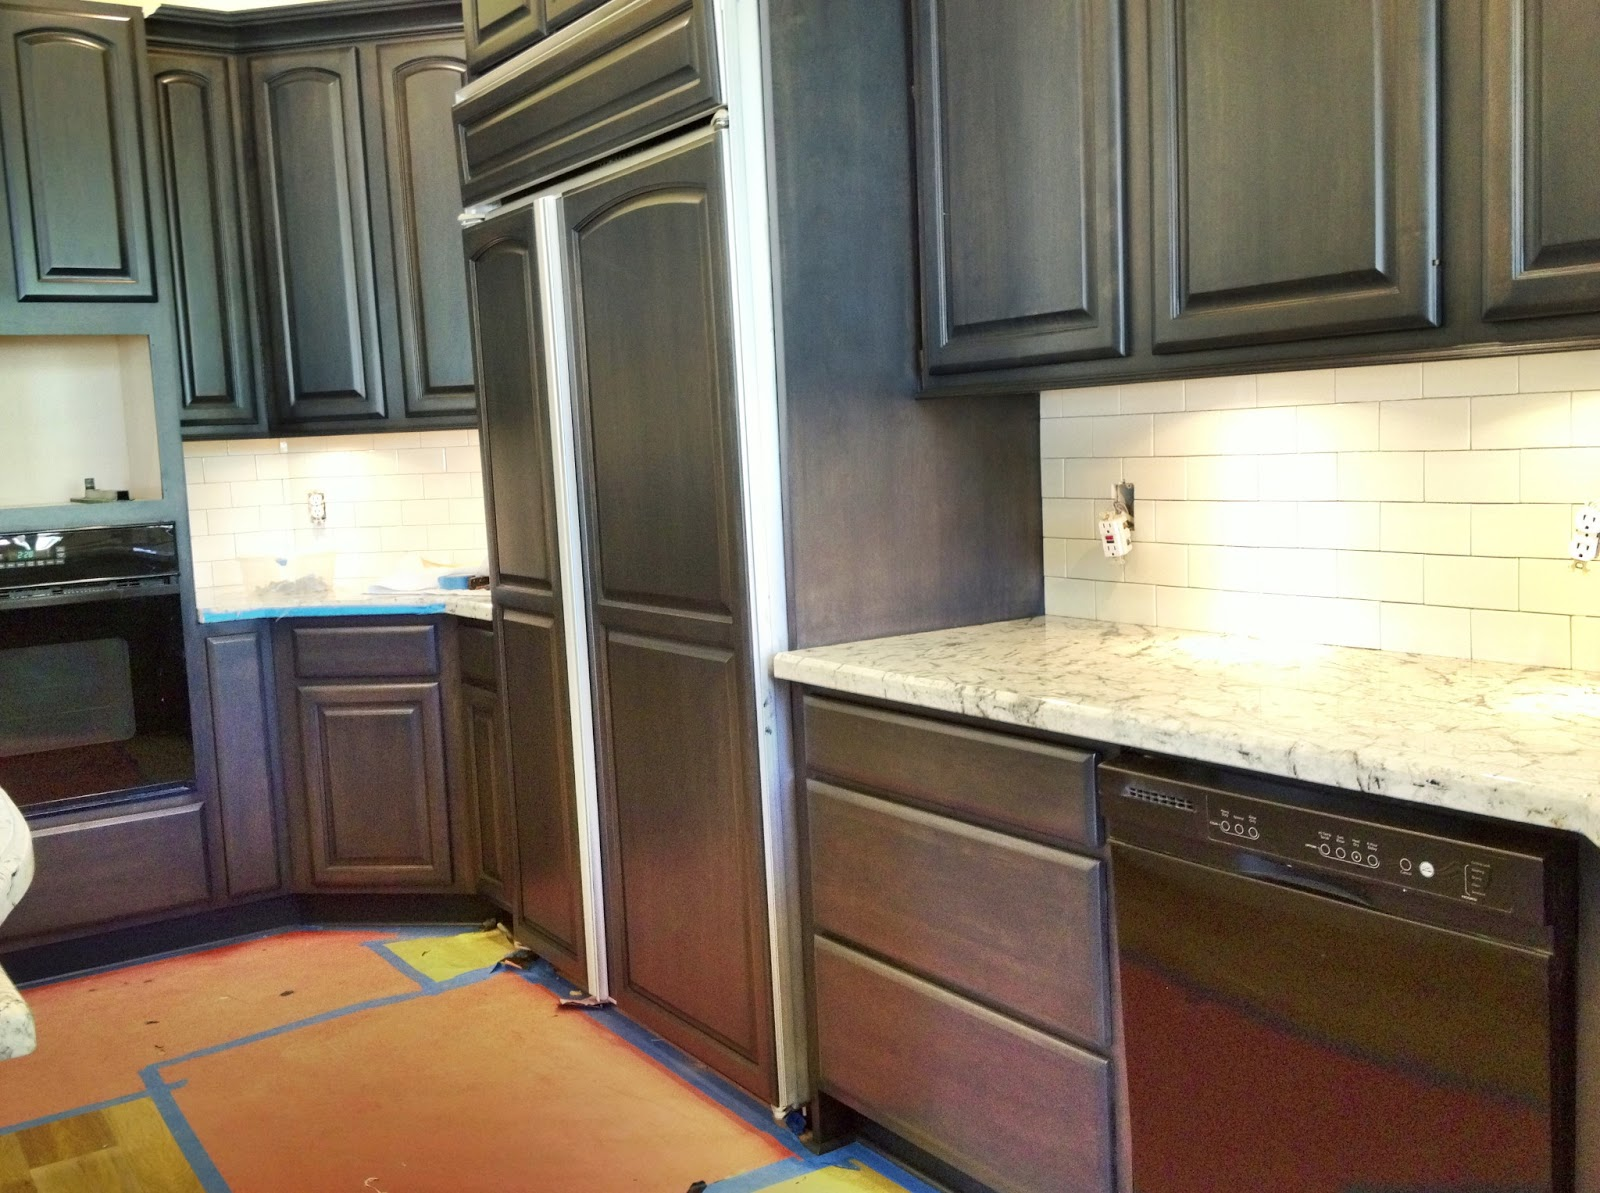 The Exciting Ideas How To Refinish Kitchen Cabinets Without Stripping